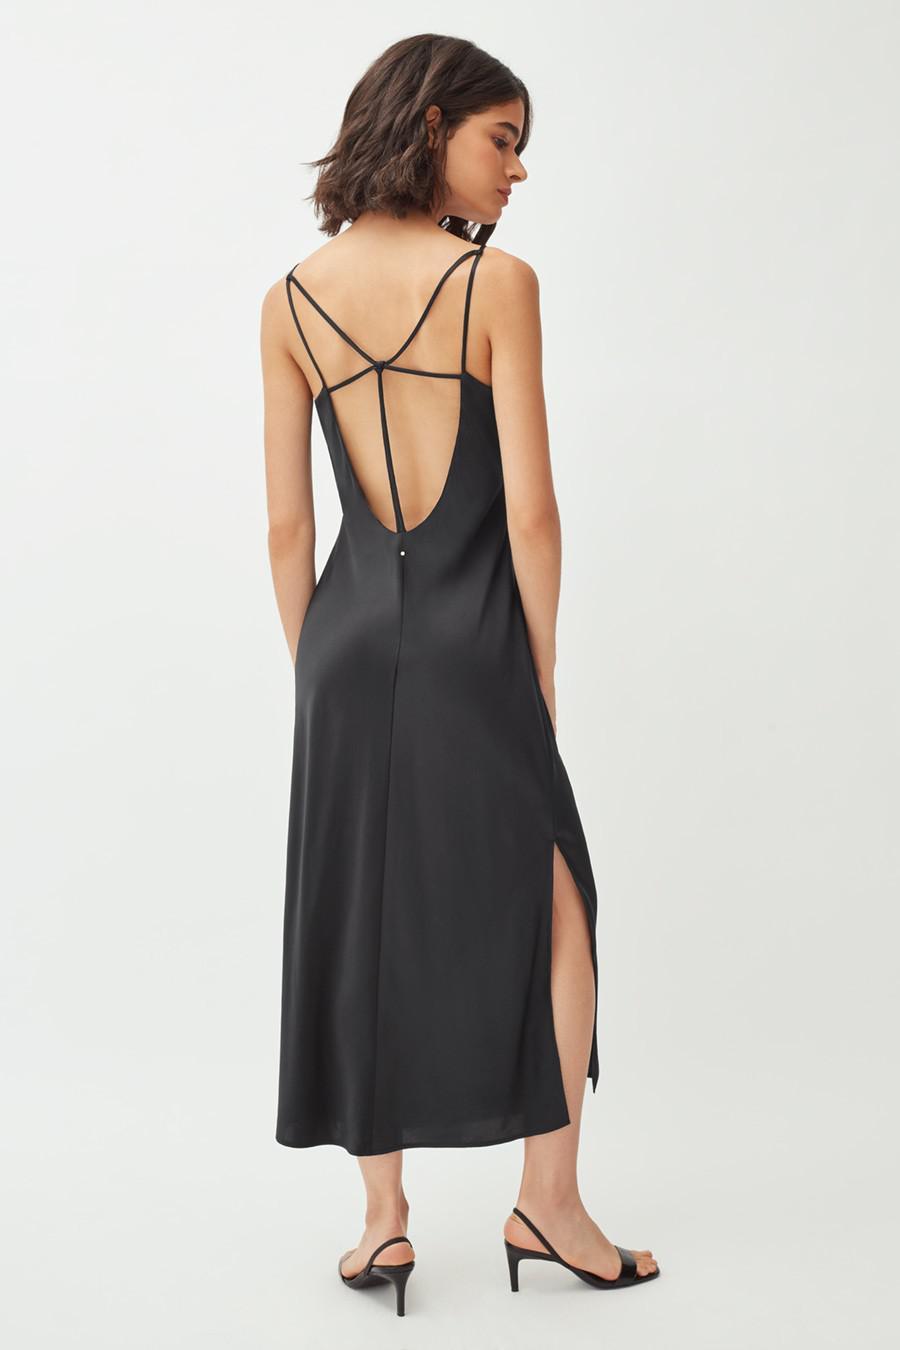 Women's Charmeuse Slip Dress in Black   Size: Large   Silk Charmeuse by Cuyana 2